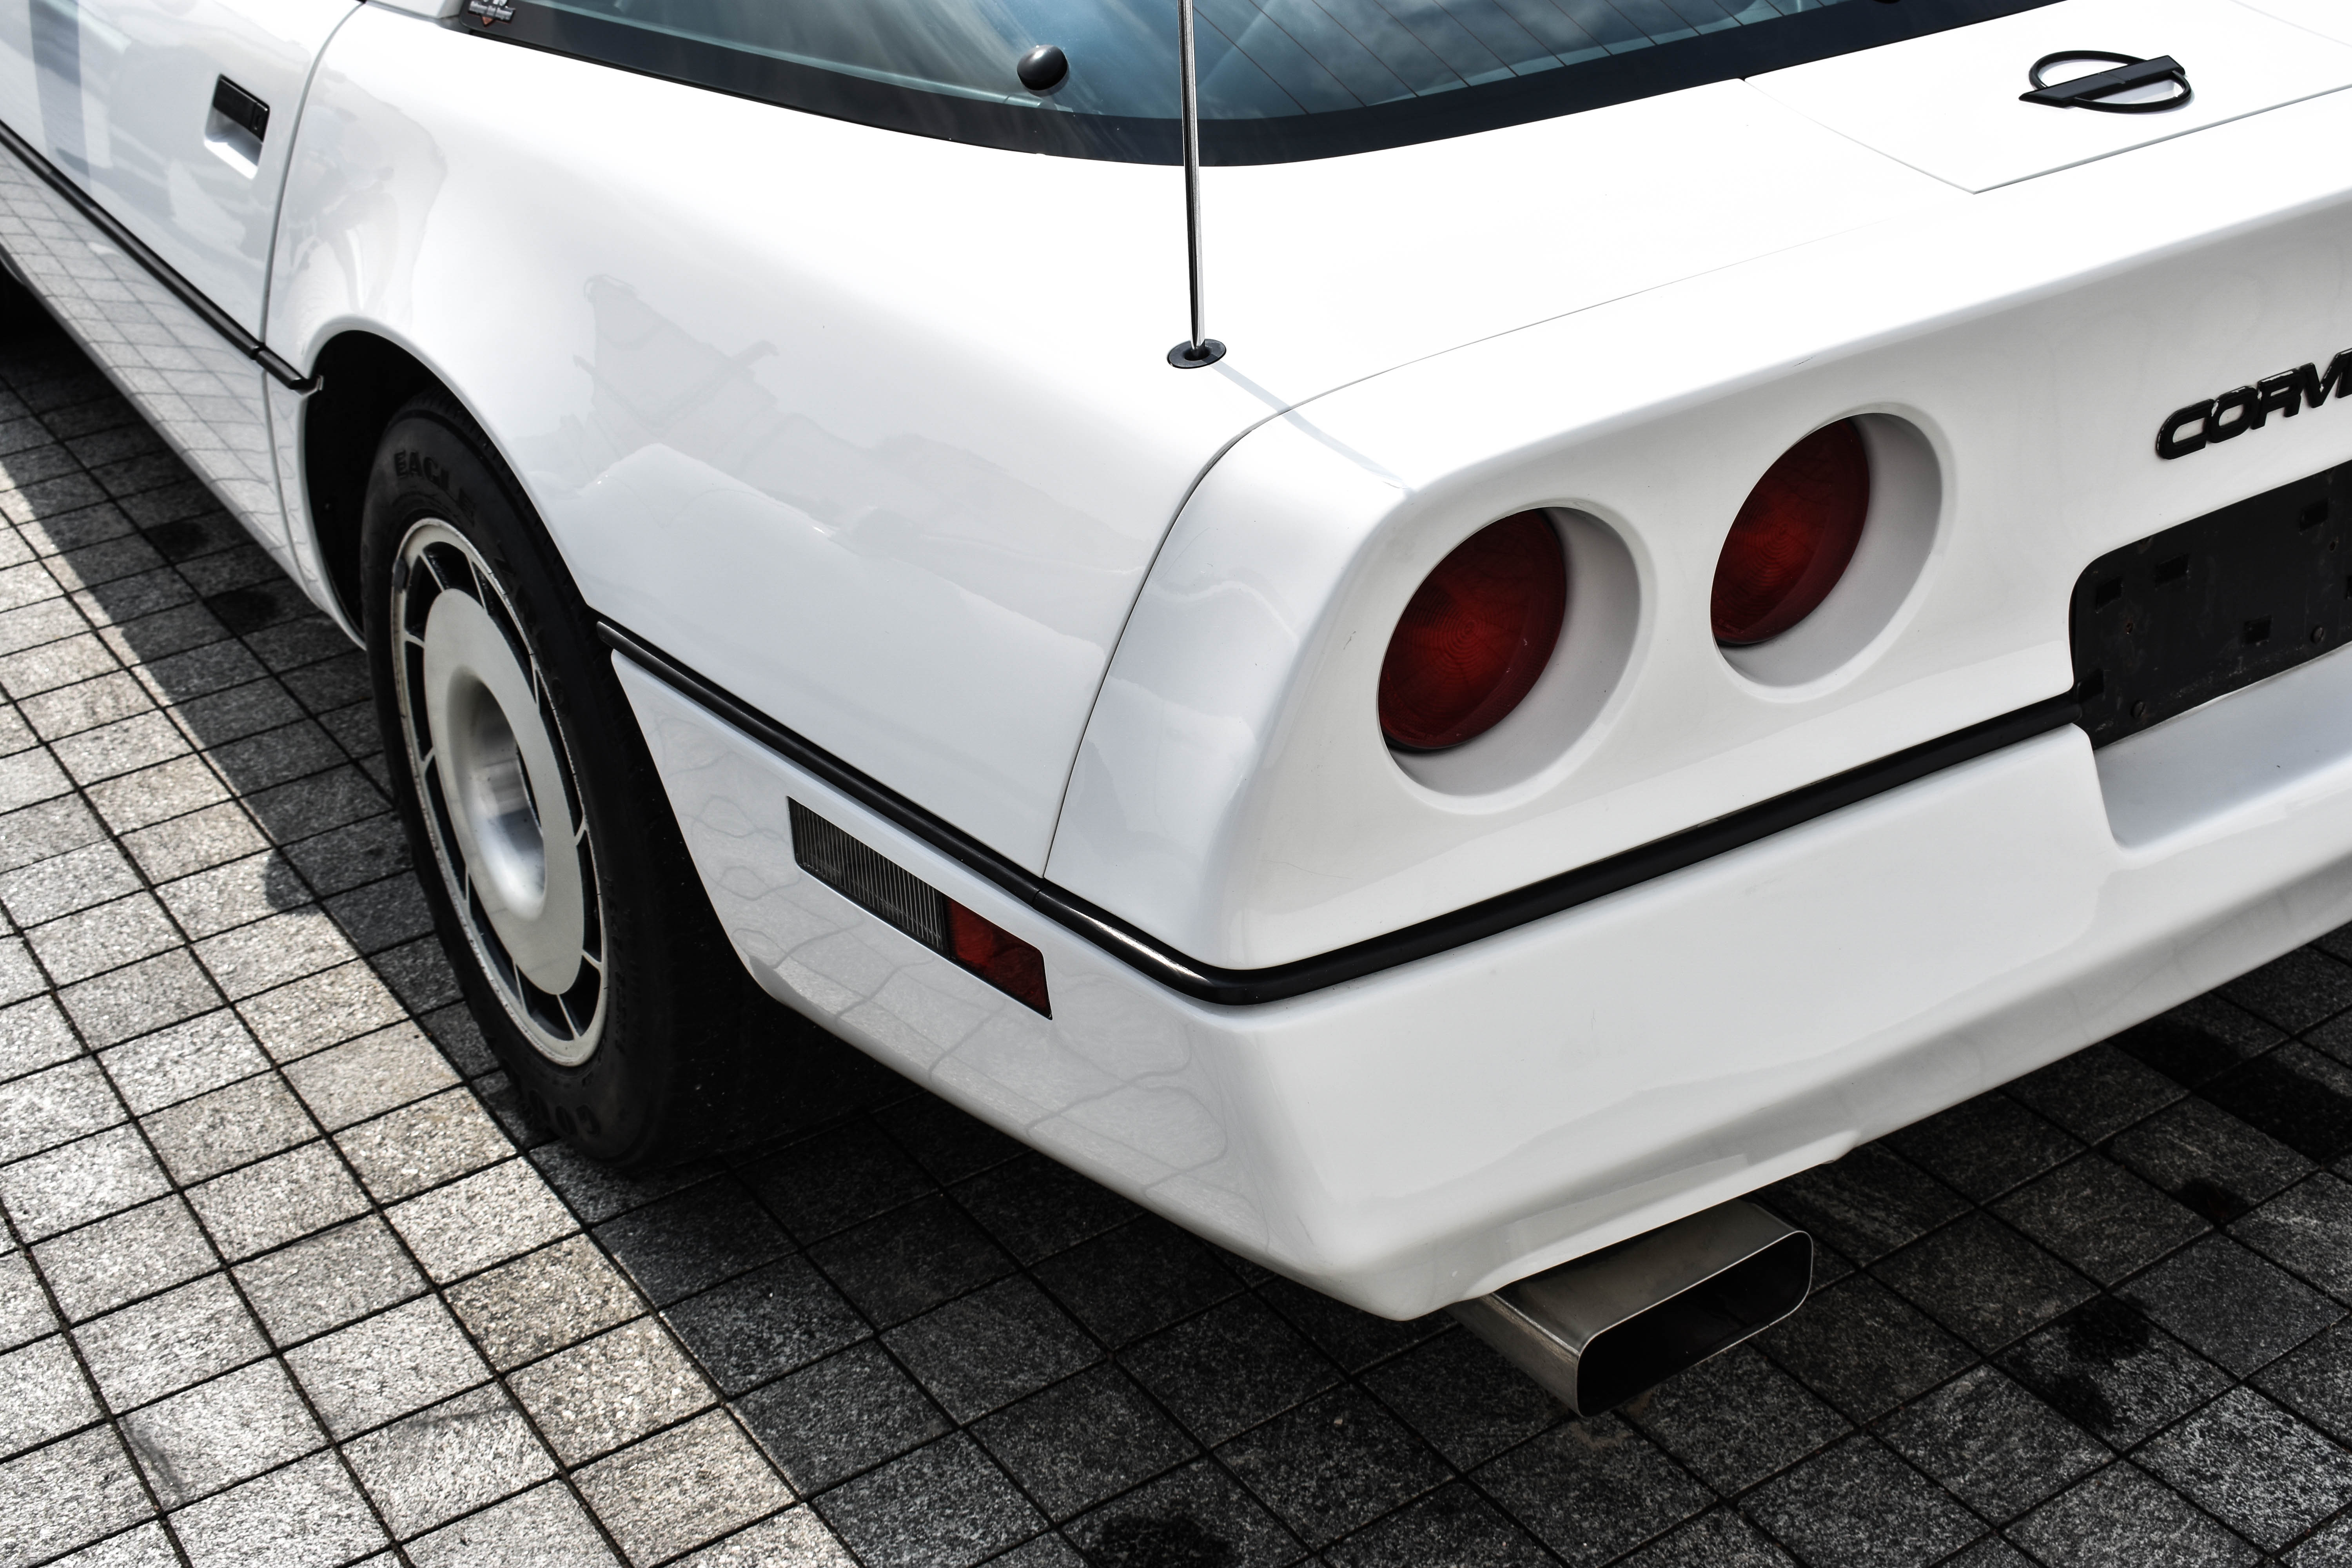 corvette_c4_rear_quarter_1_of_1.jpg